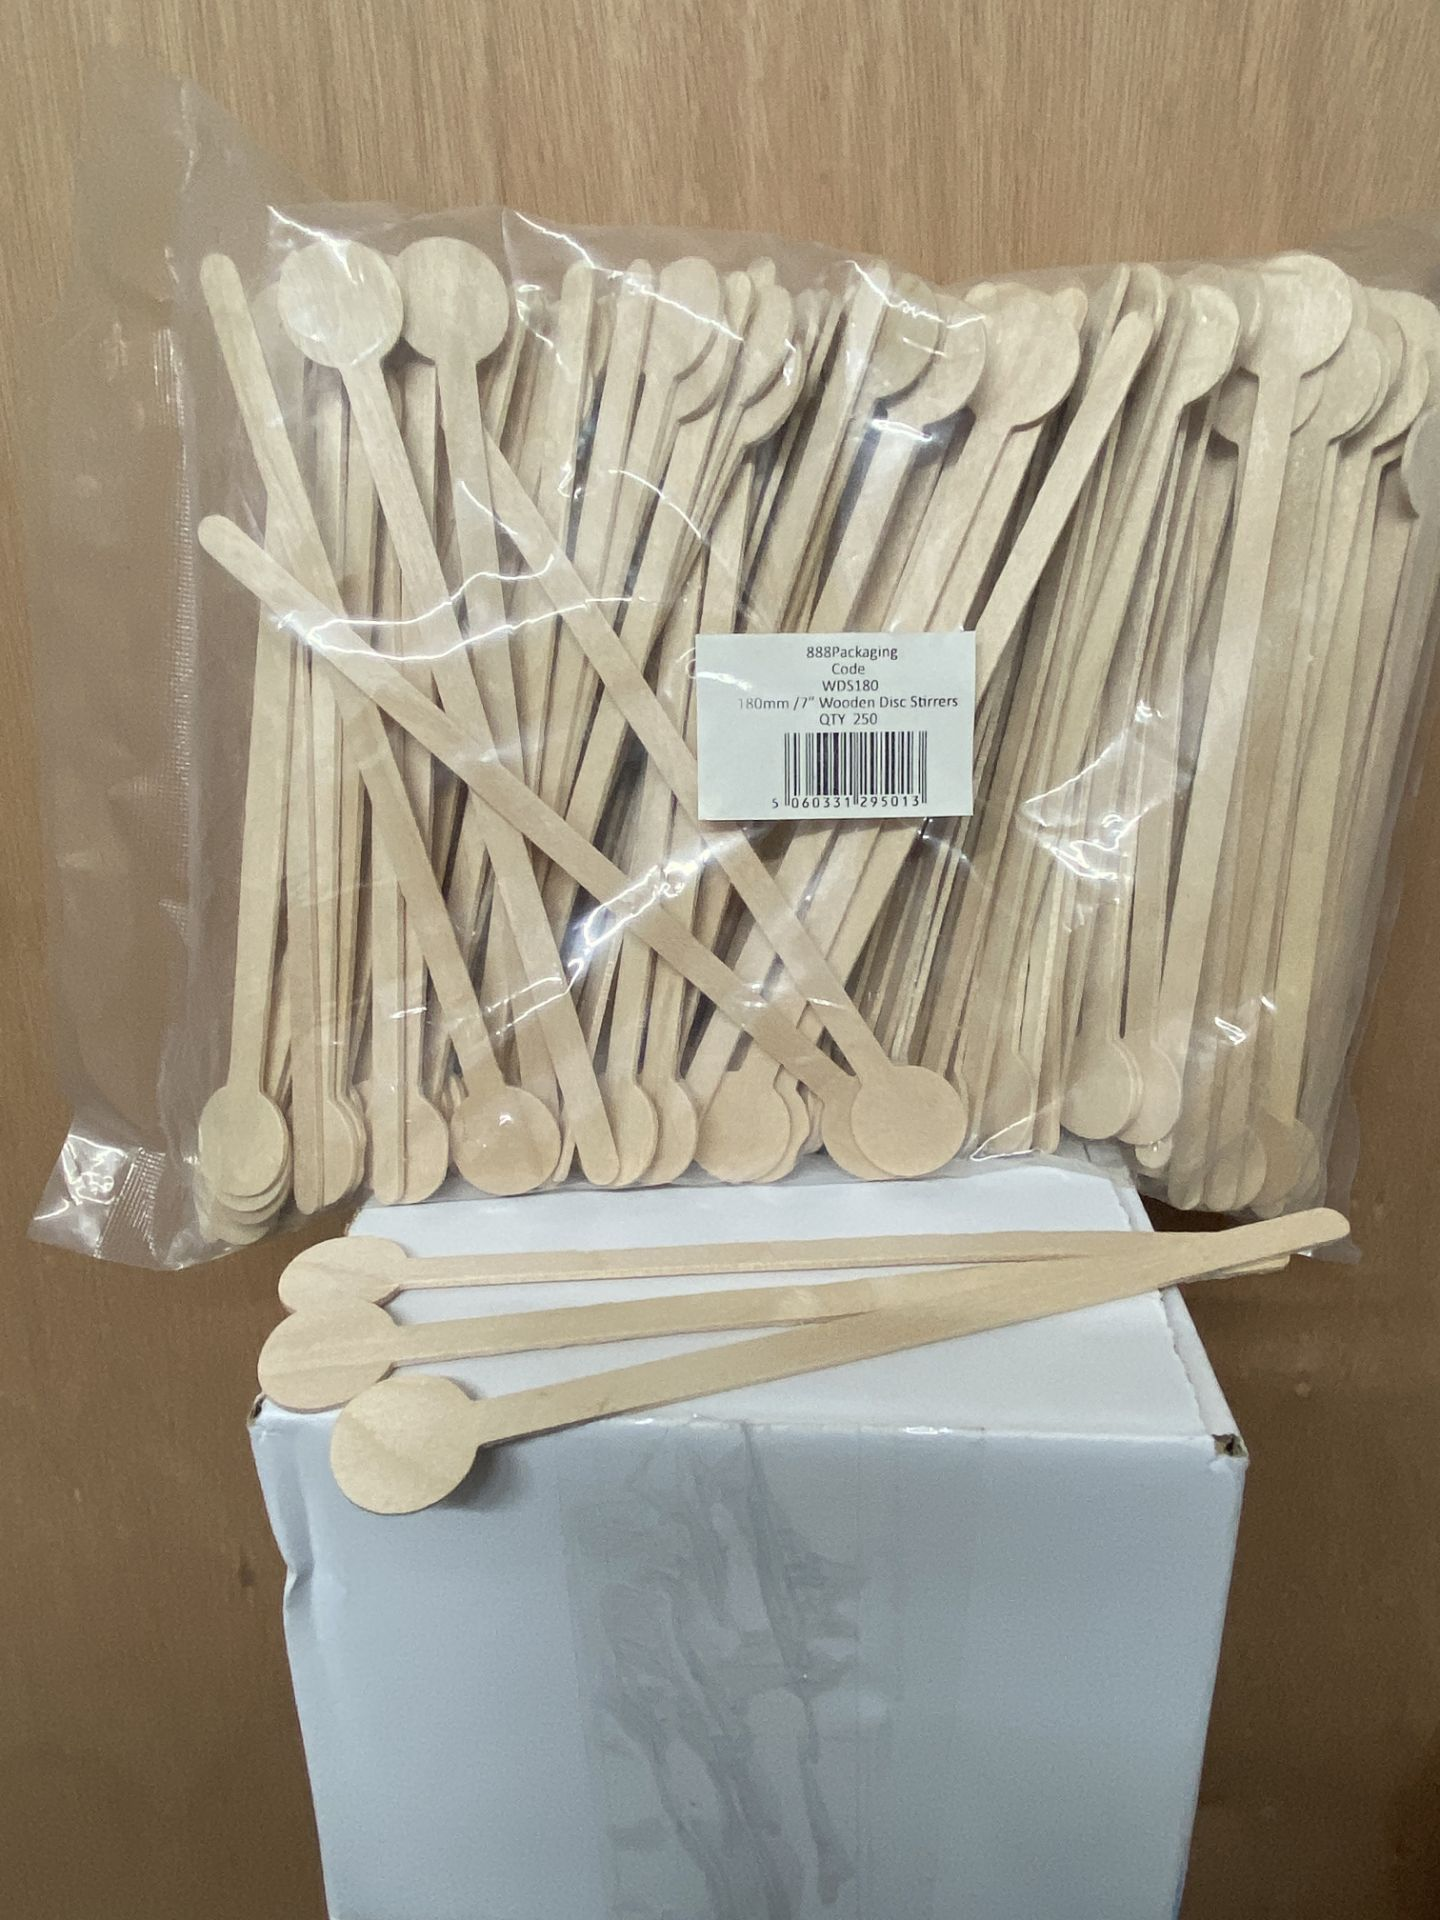 Lot 330 - 5 x Boxes of 2,000 Wooden Disc Stirrers by 888 Gastro Disposables